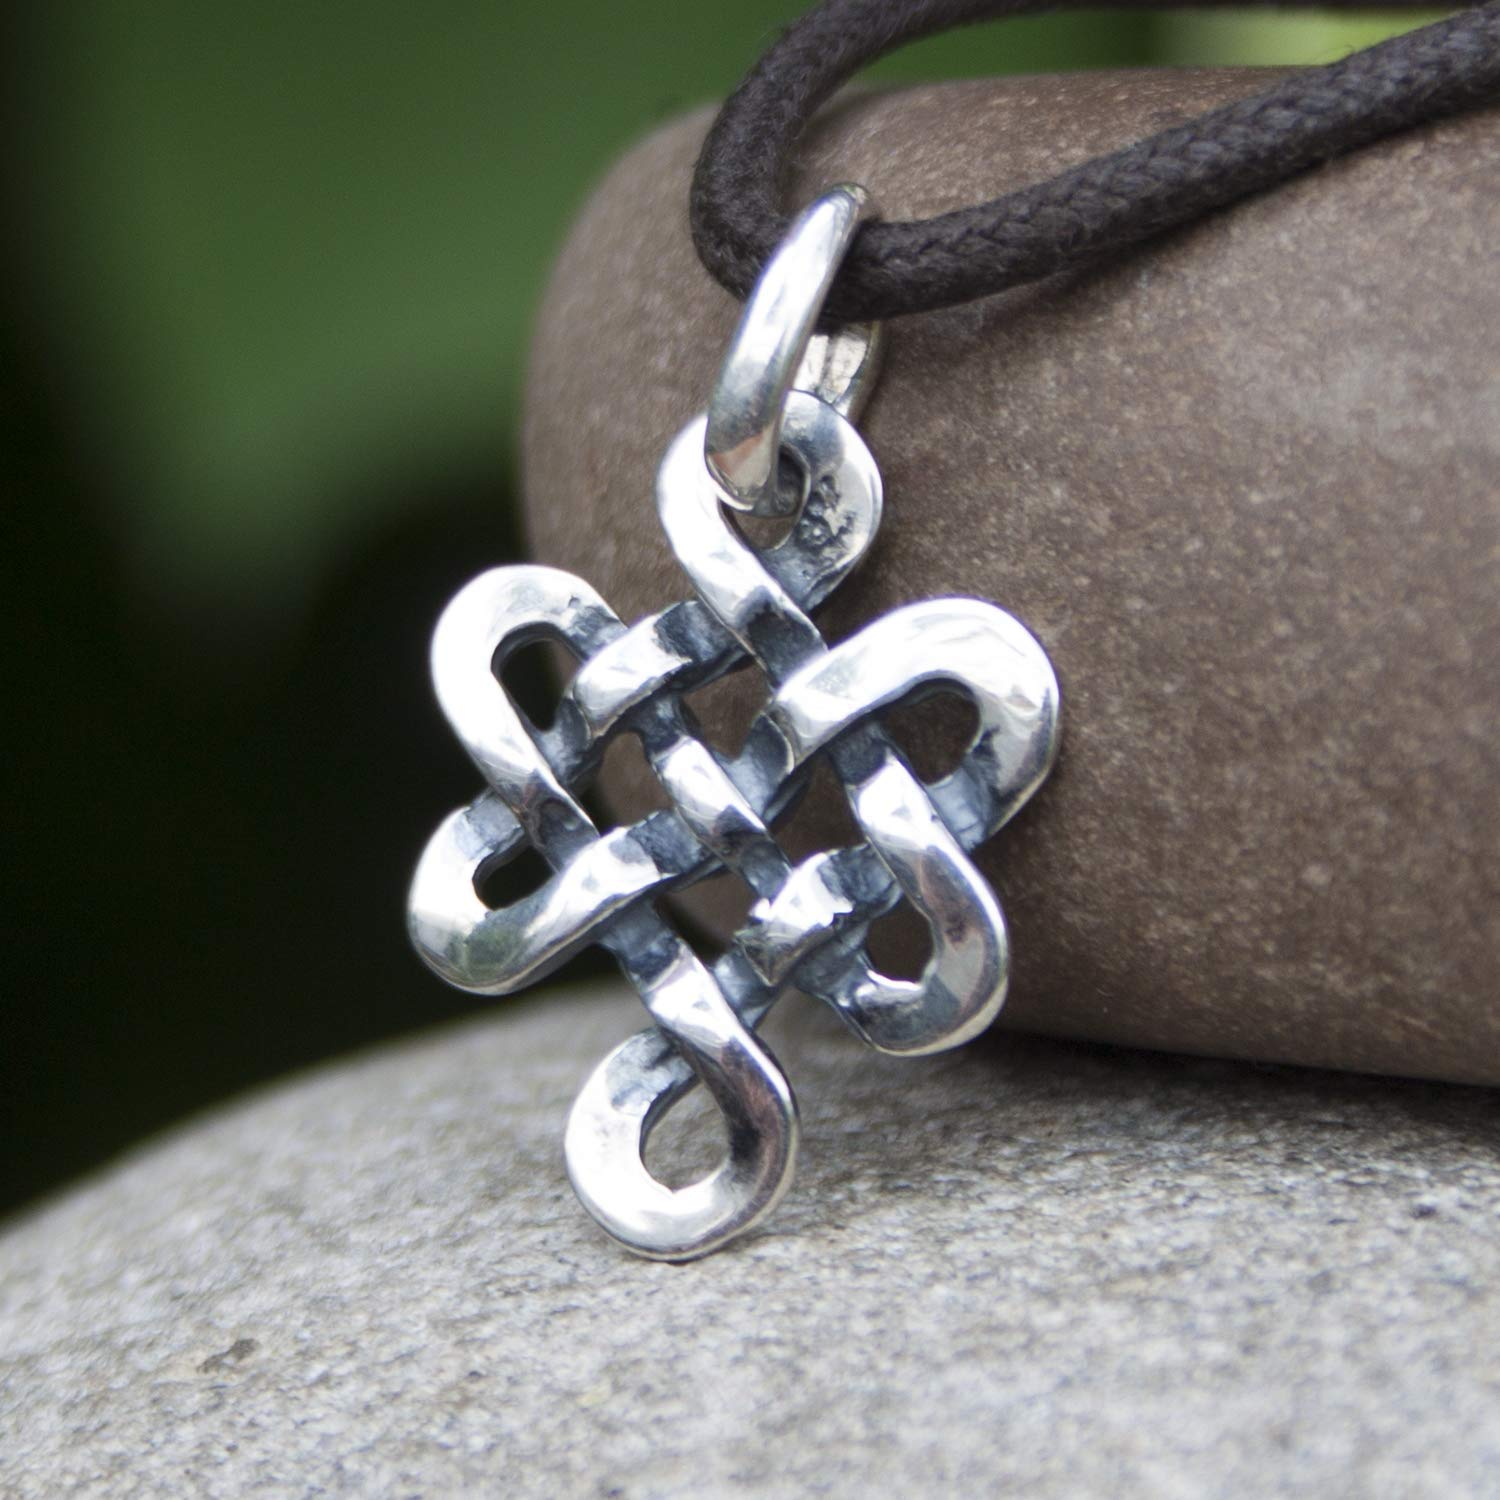 Tibetan Endless Knot Necklace Infinite Celtic Irish Love Knot Pendant Mystic Buddhist Amulet Wiccan Nepal Jewelry for Men Women Yoga Lover ...